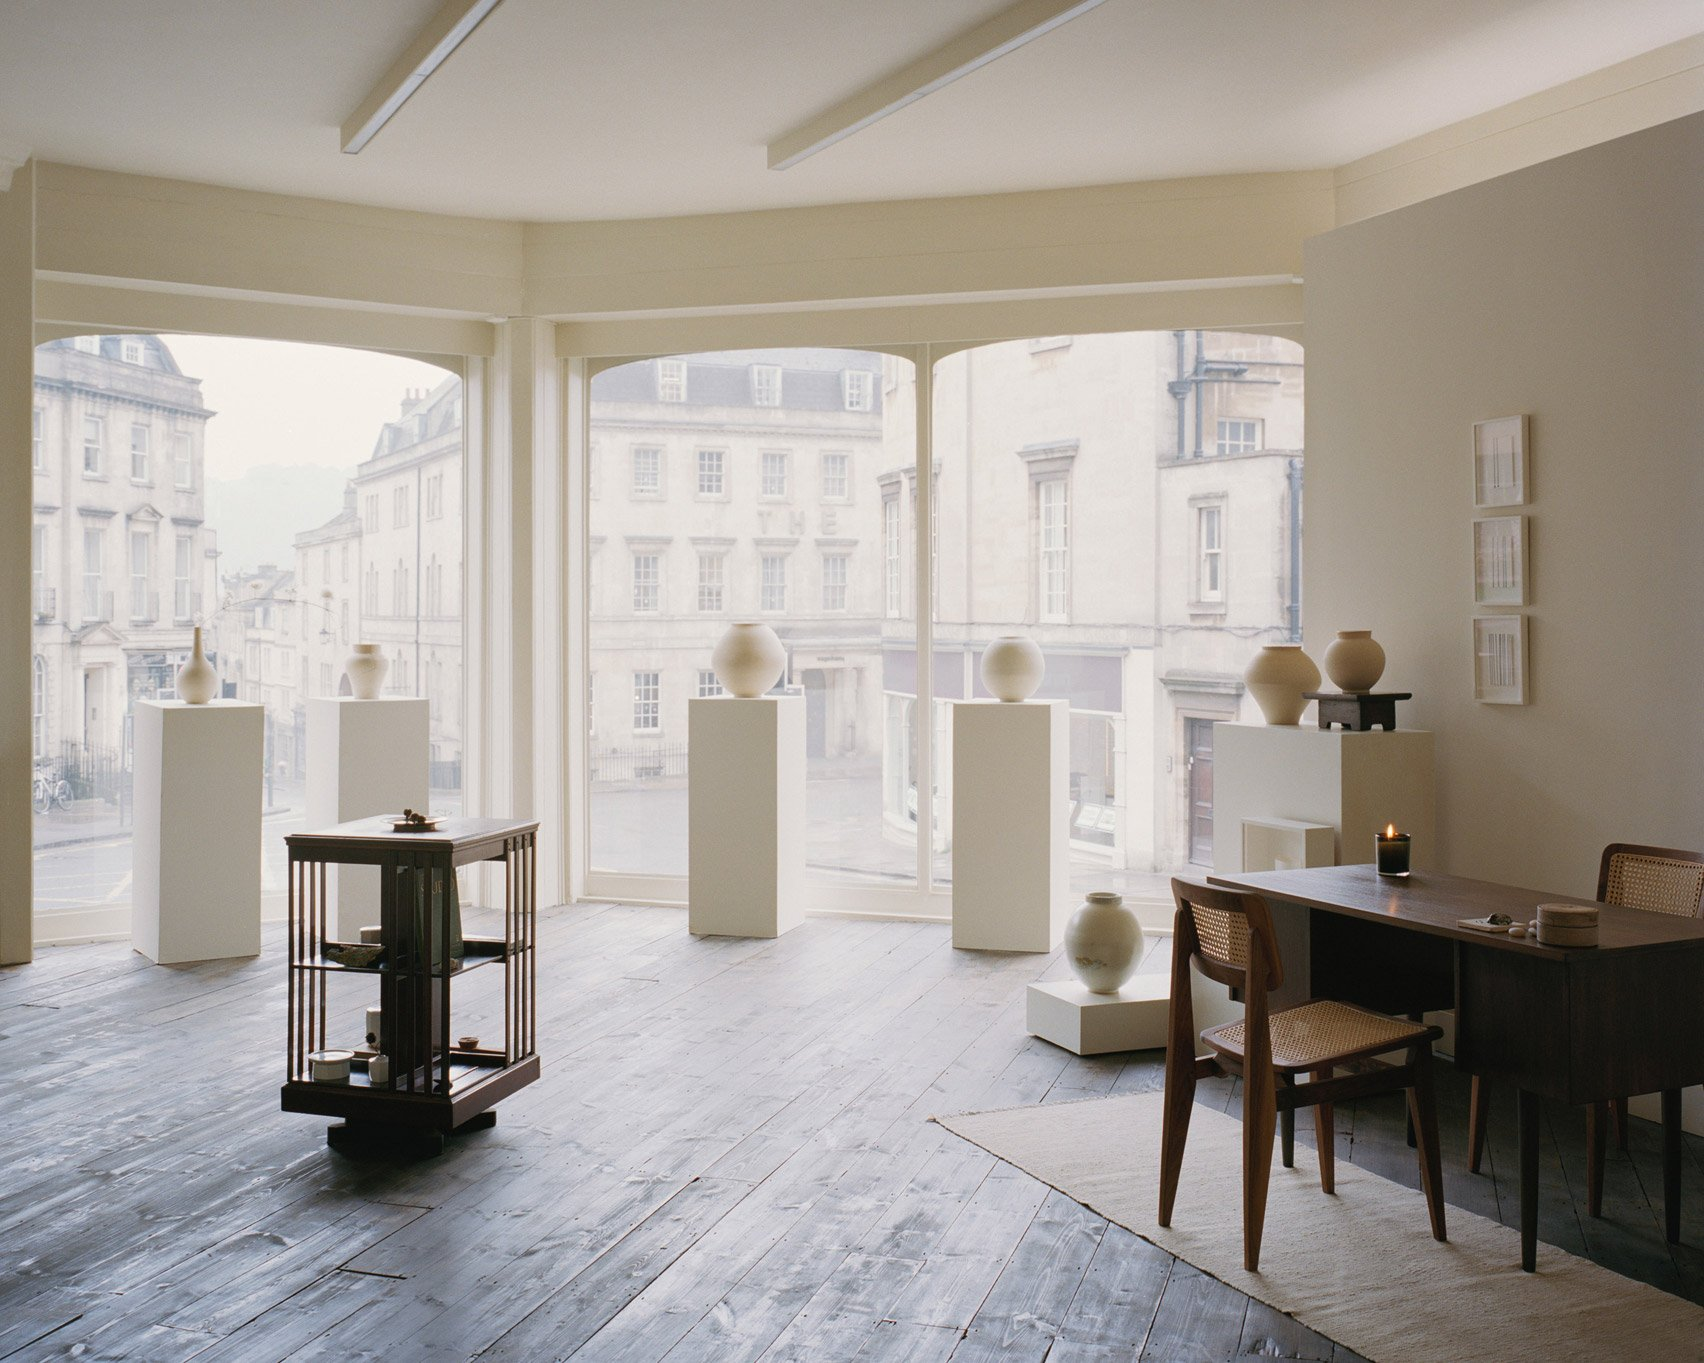 Francis Gallery in Bath, England